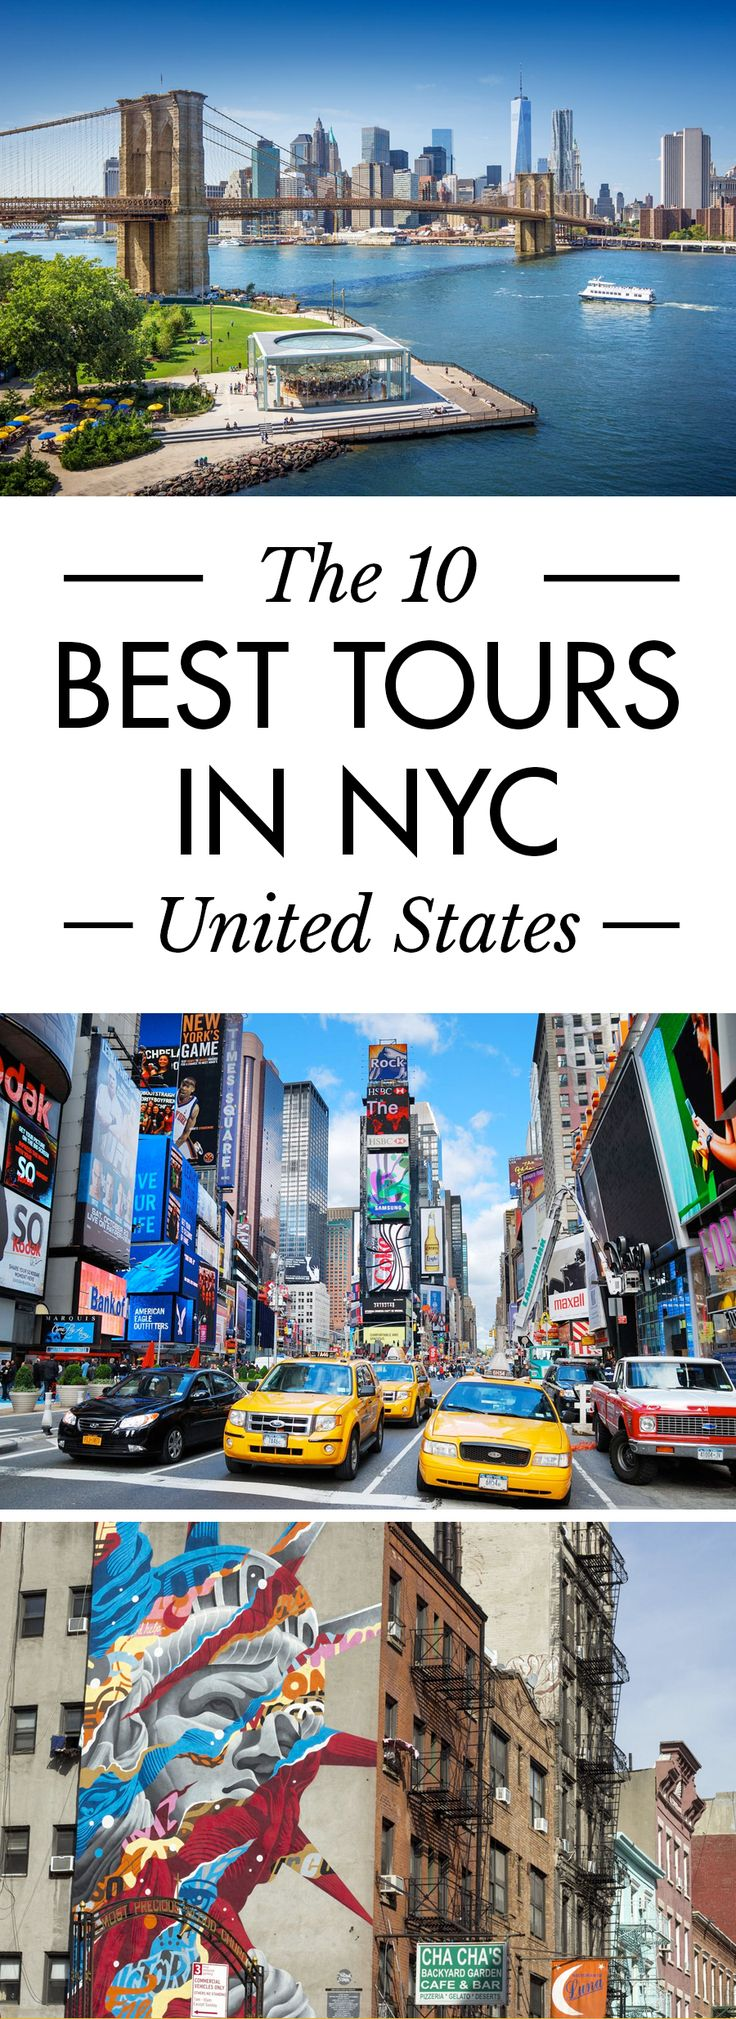 Click the pin to discover the best tours in NYC. Don't miss out, there are so many amazing things to do in New York City.